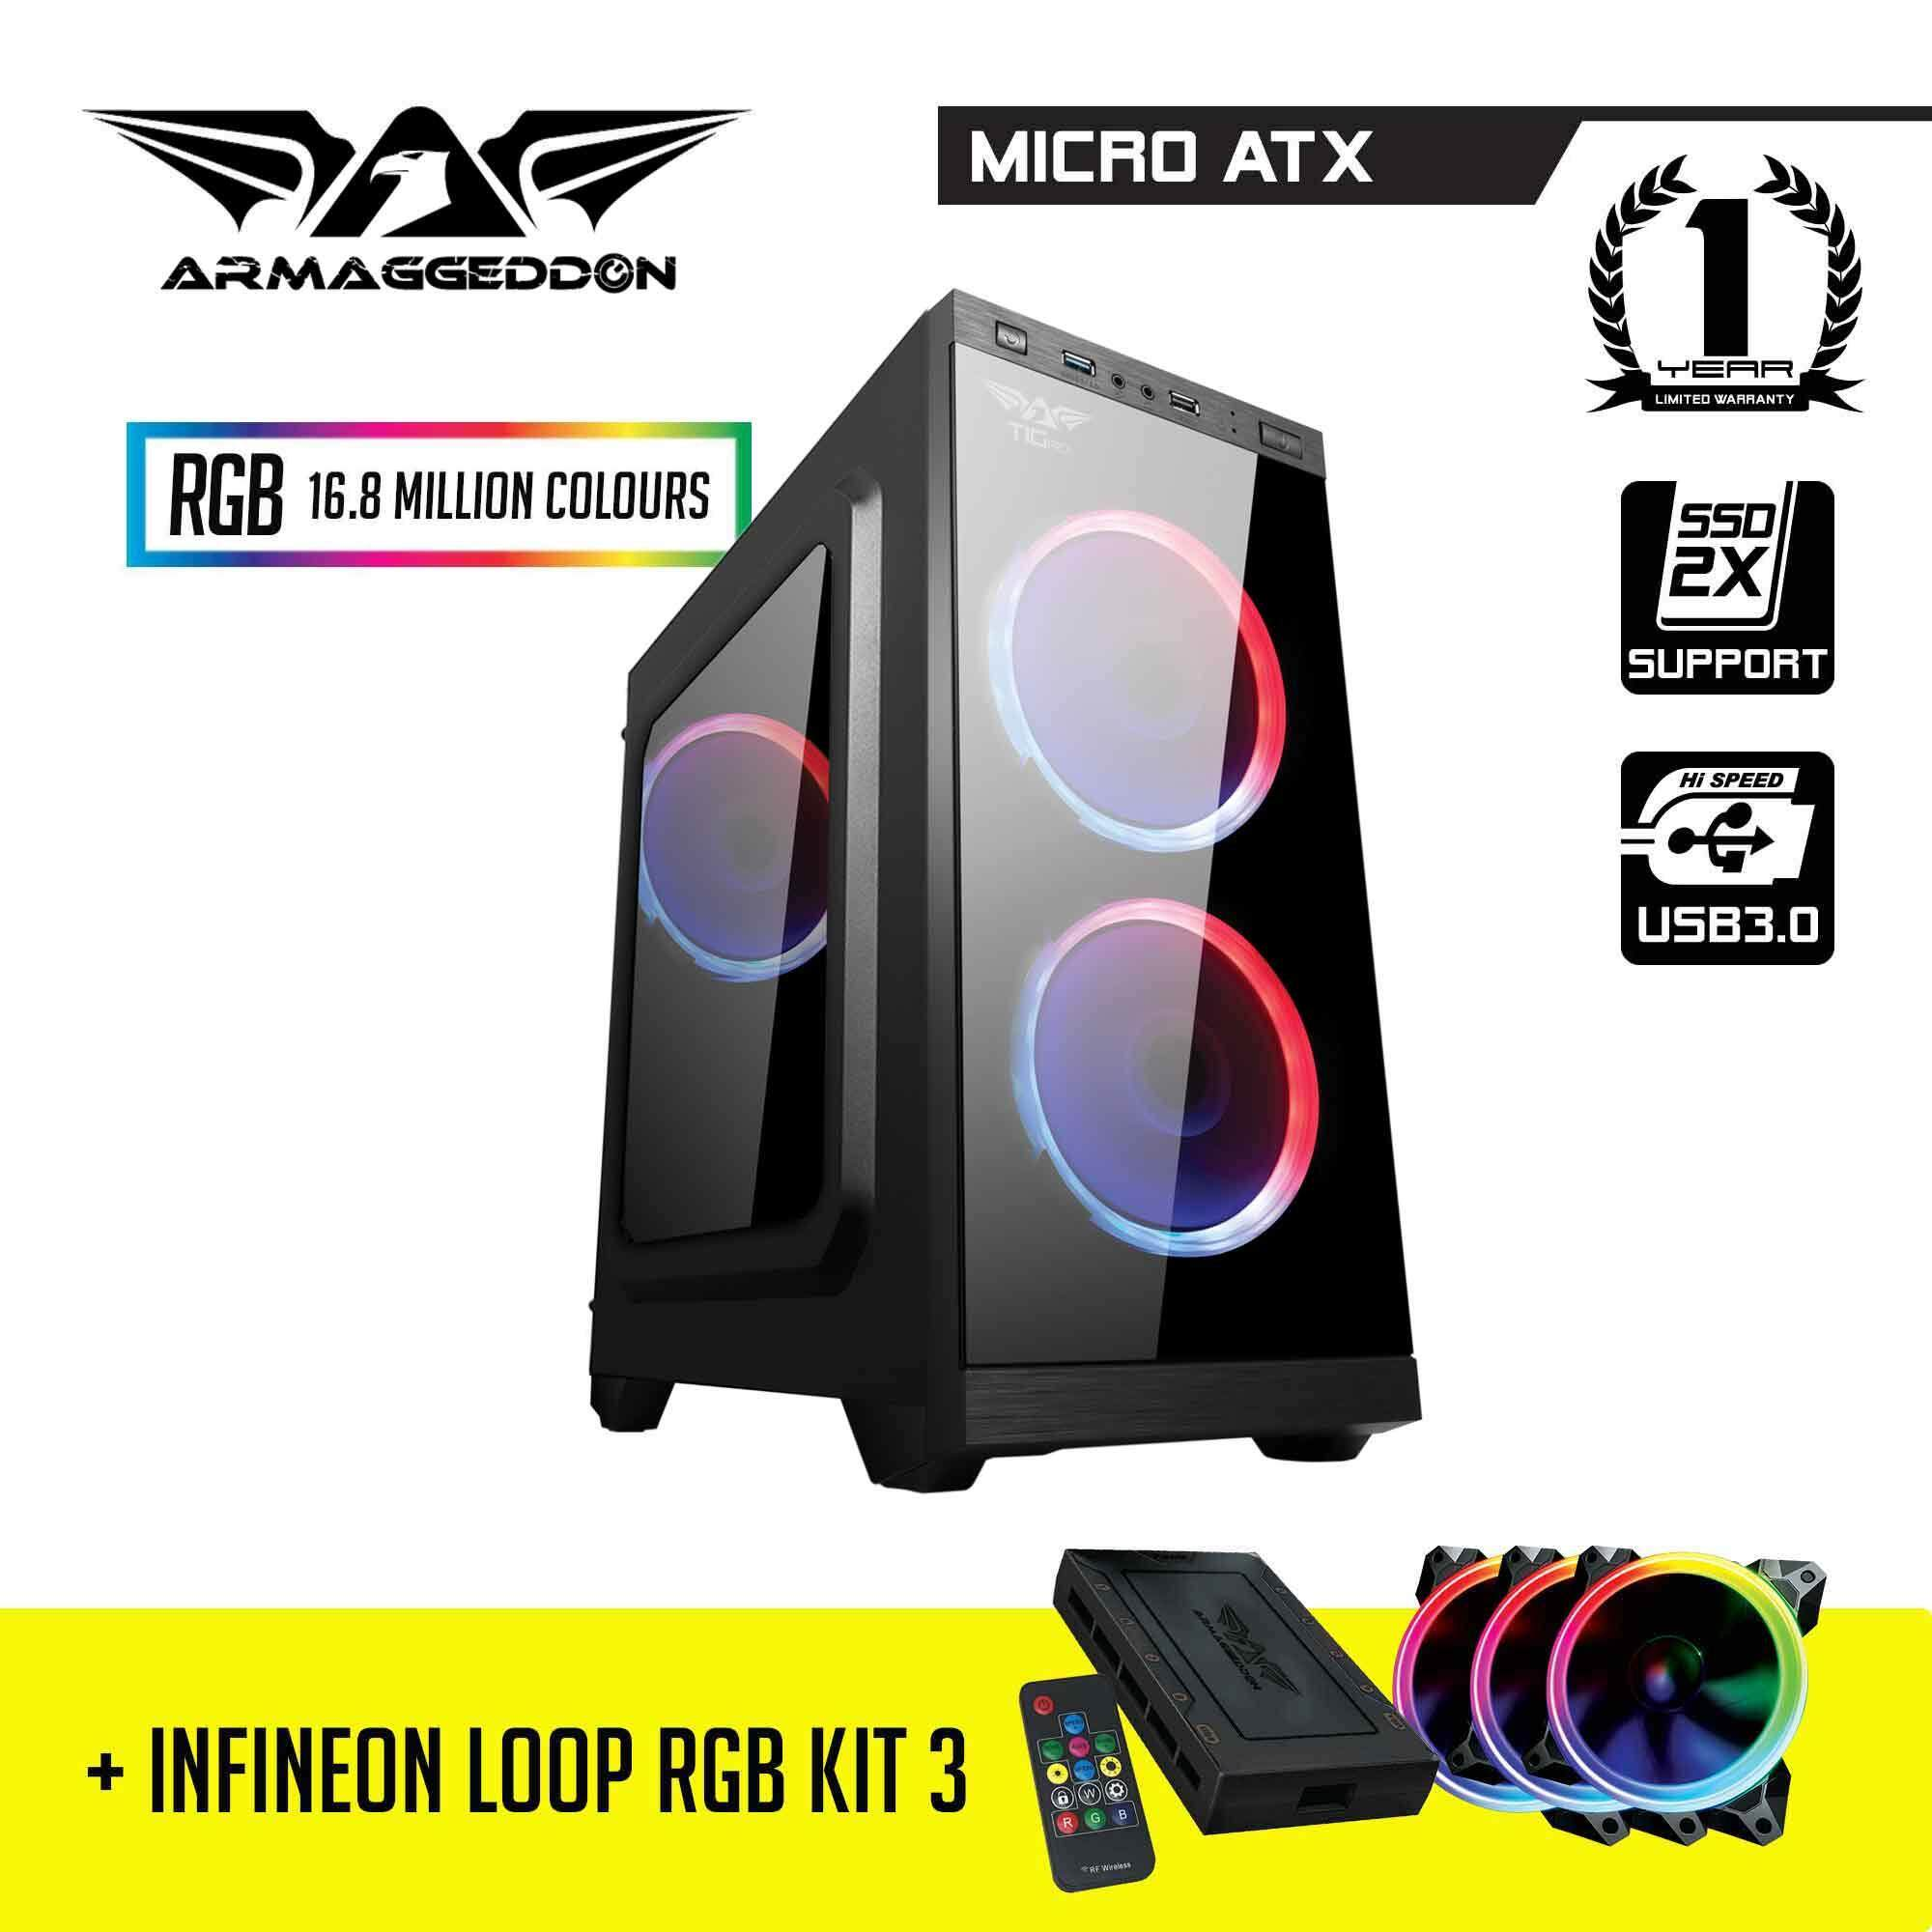 BUNDLE: Armaggeddon T1G Pro Micro ATX Gaming Case and Infineon Loop RGB Kit 3 RGB Fan and FX Controller Malaysia